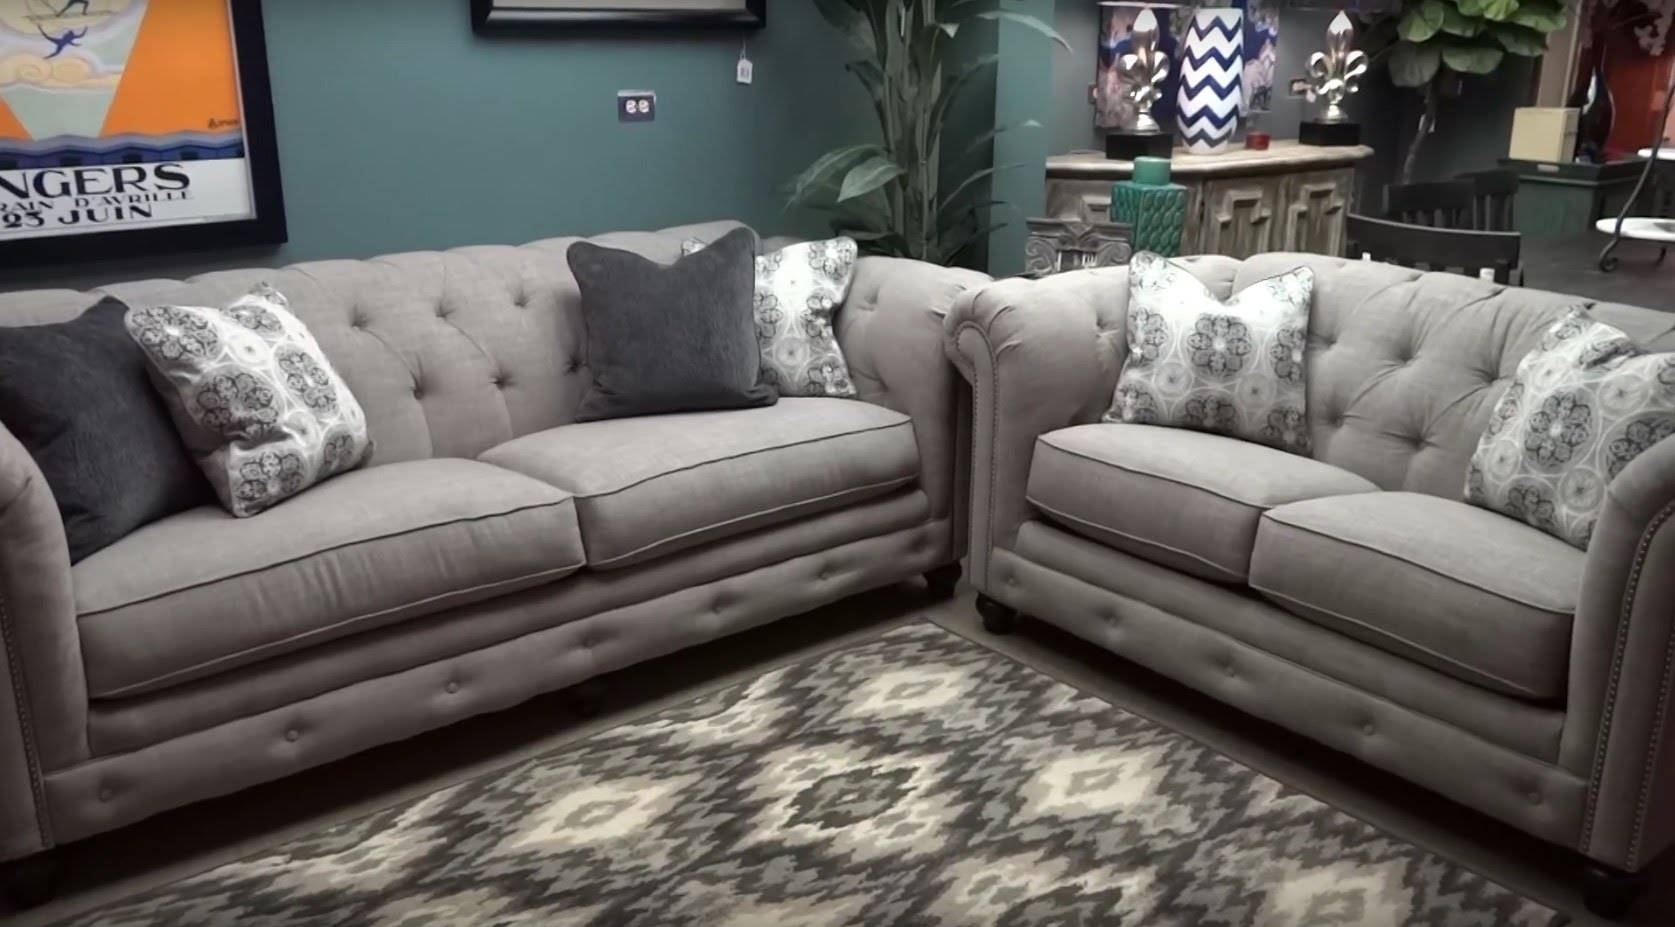 Ashley Furniture Azlyn Sepia Tufted Sofa & Loveseat 994 Review with Ashley Tufted Sofa (Image 1 of 30)